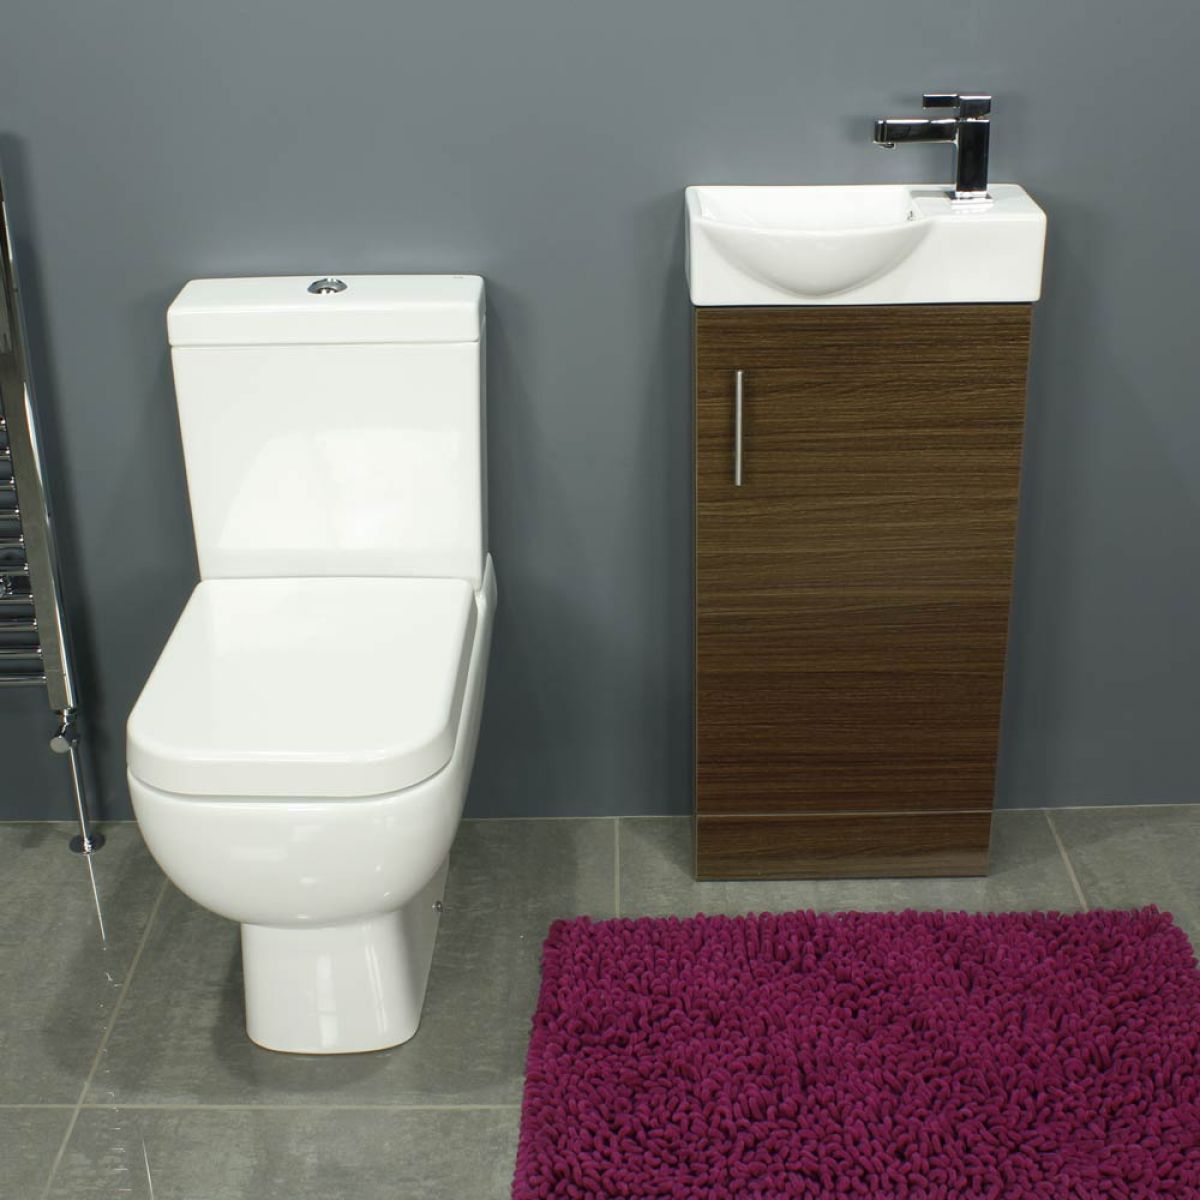 RAK Series 600 Close Coupled Toilet and 400 Series Walnut Mini Vanity Unit Front